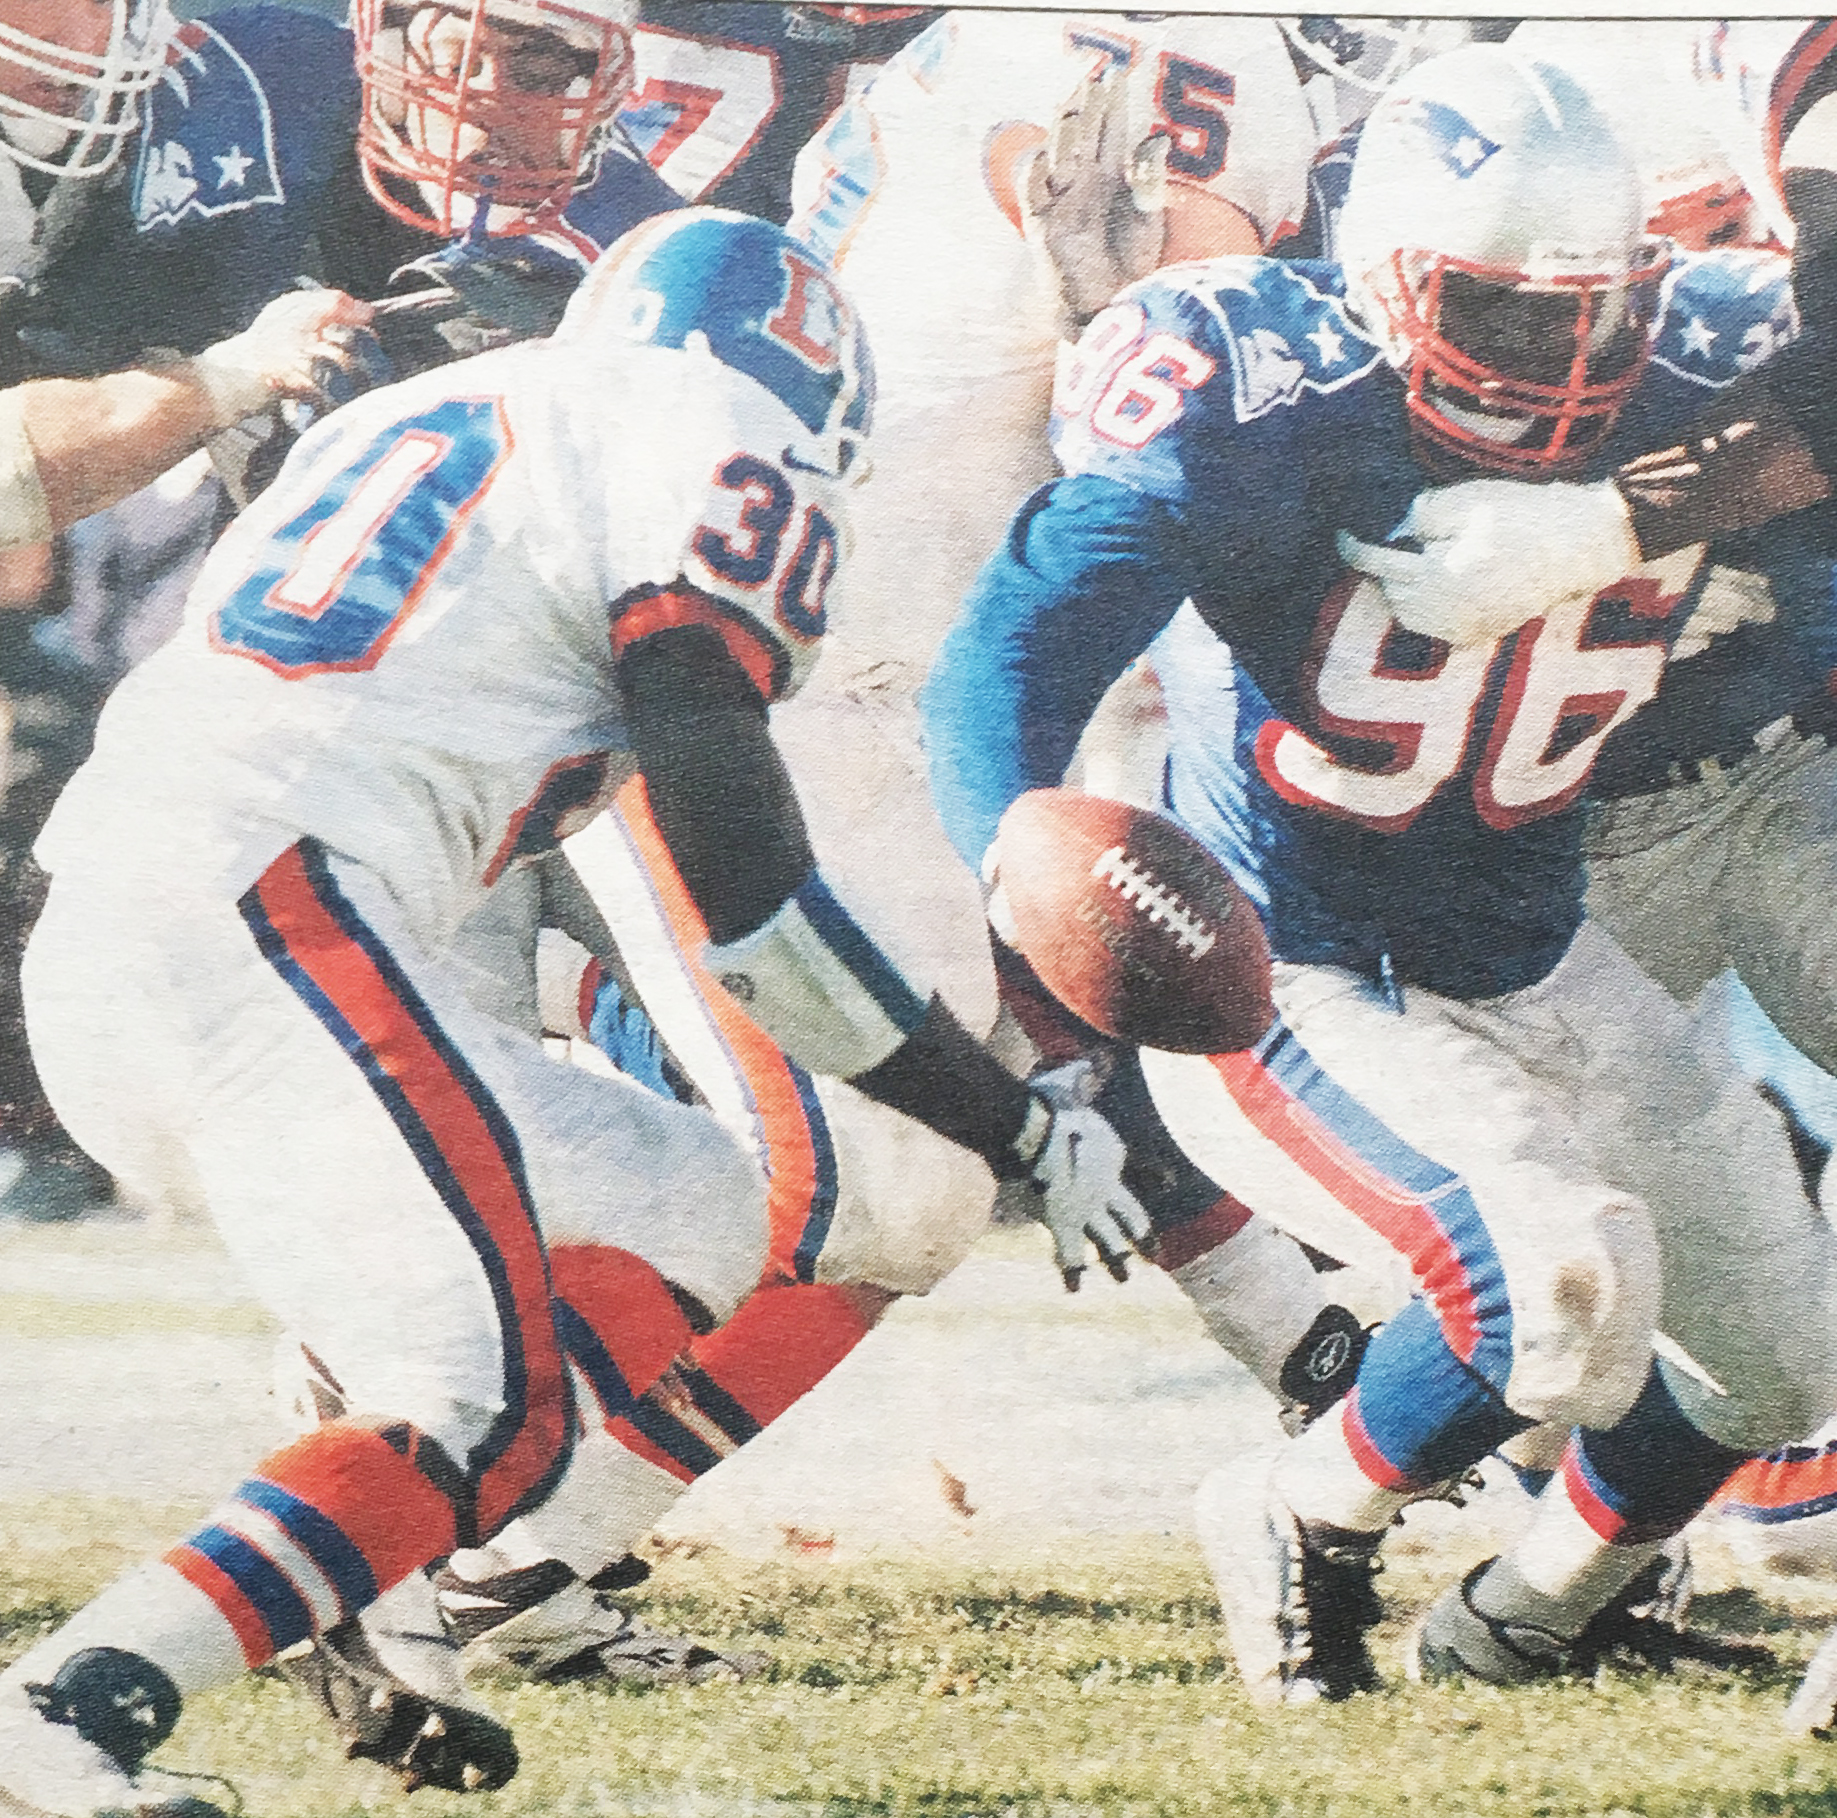 Terrell Davis recovered his own fumble to score a touchdown.